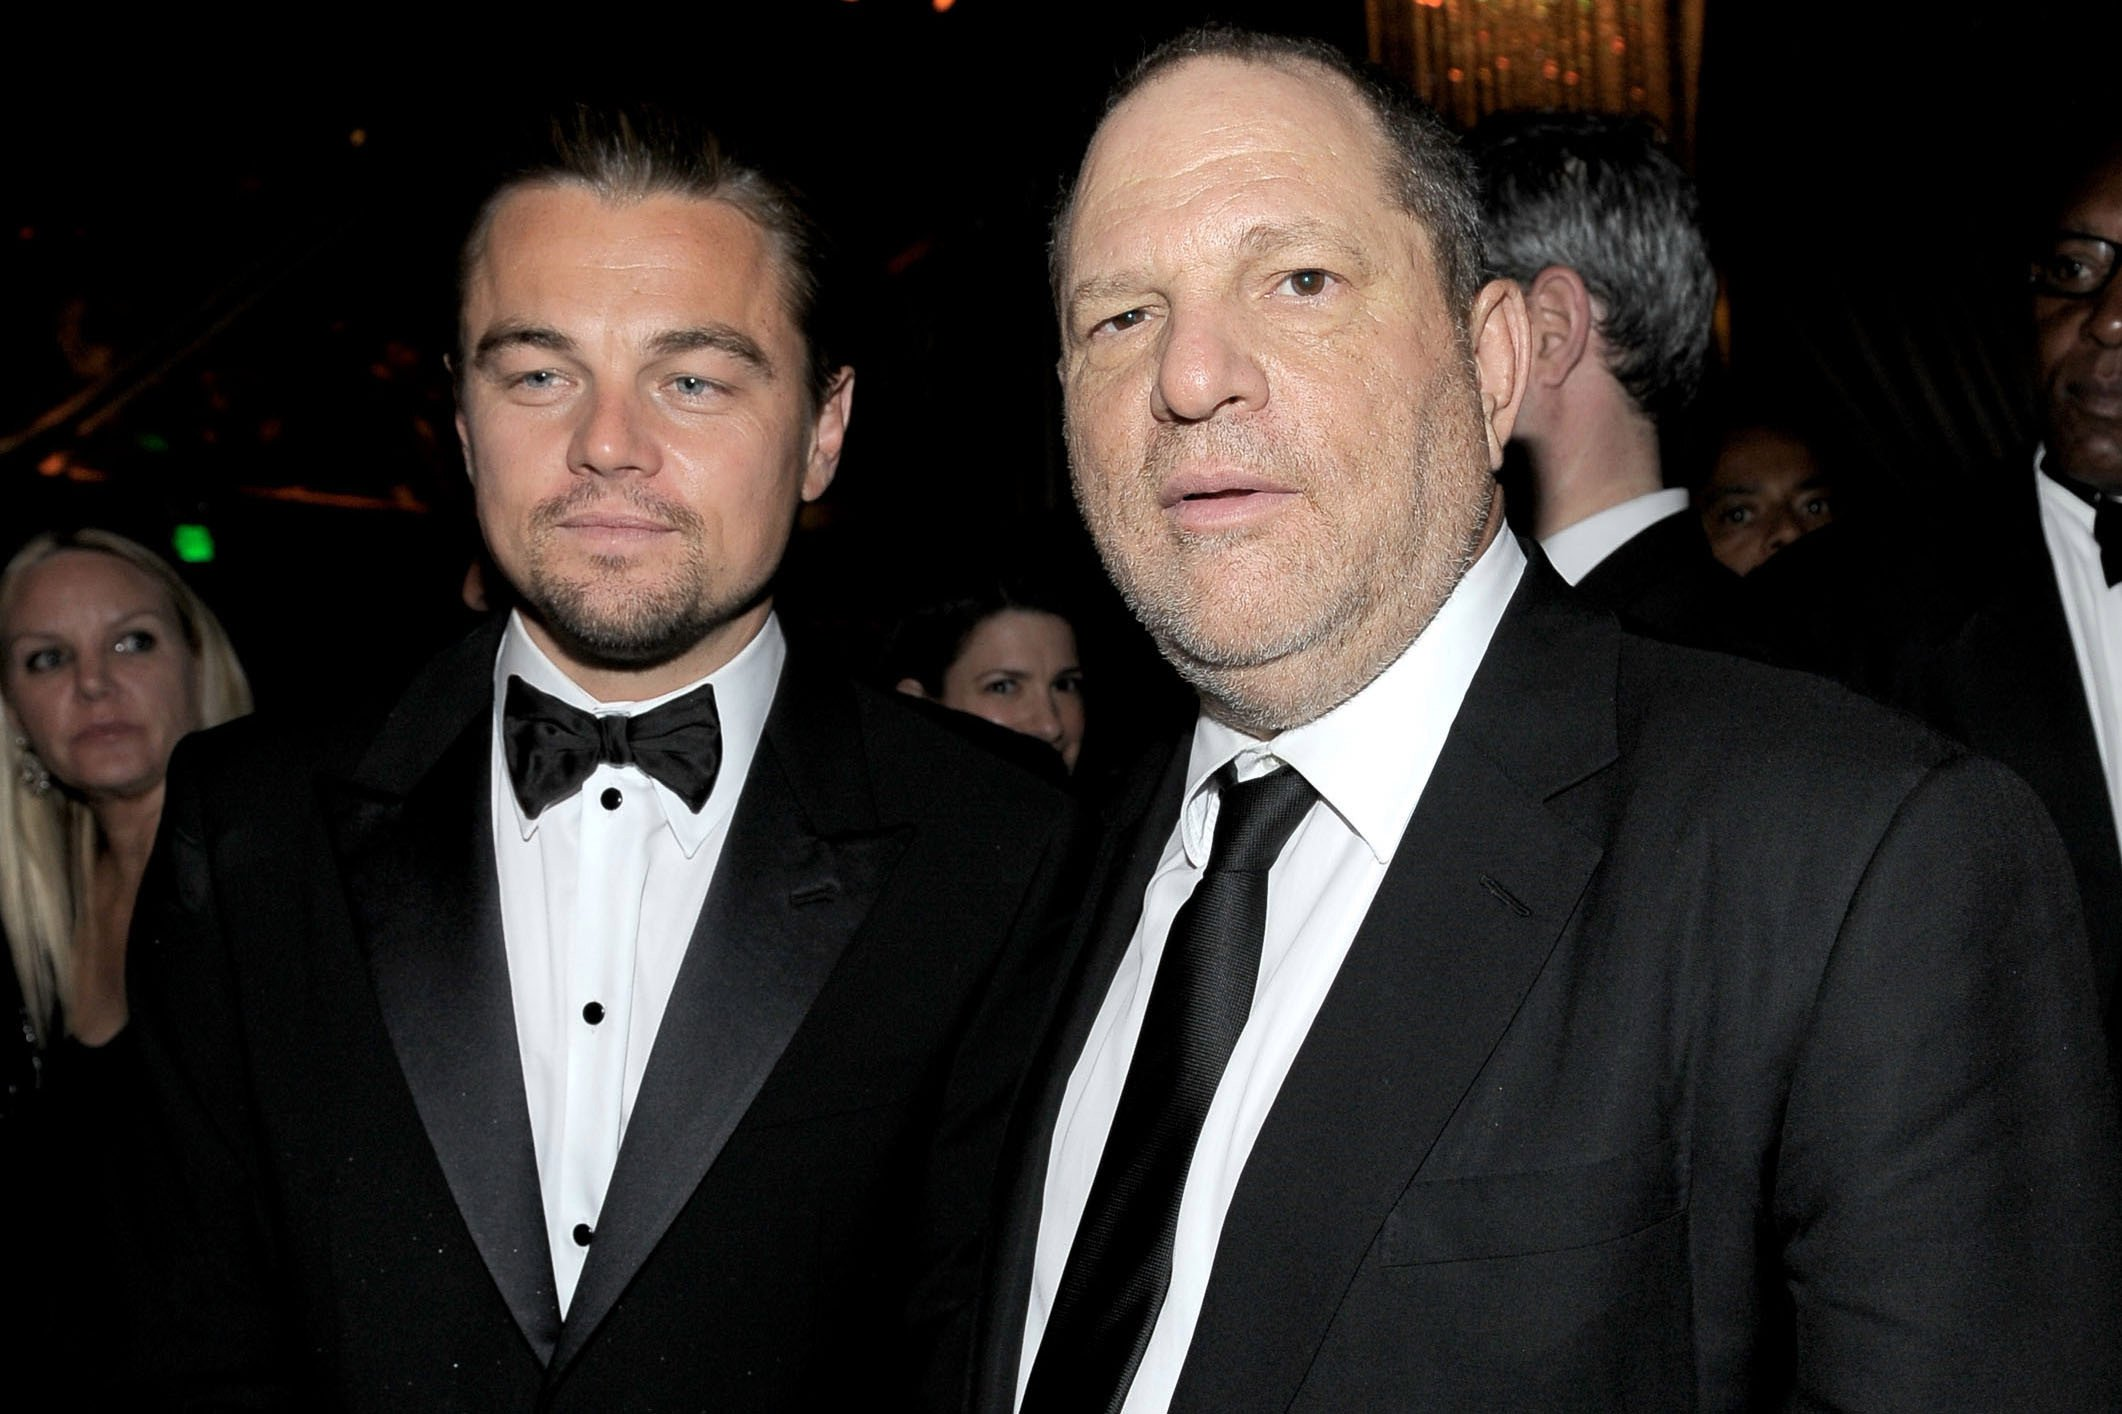 Leo's foundation auctions included 'prizes' with Weinstein